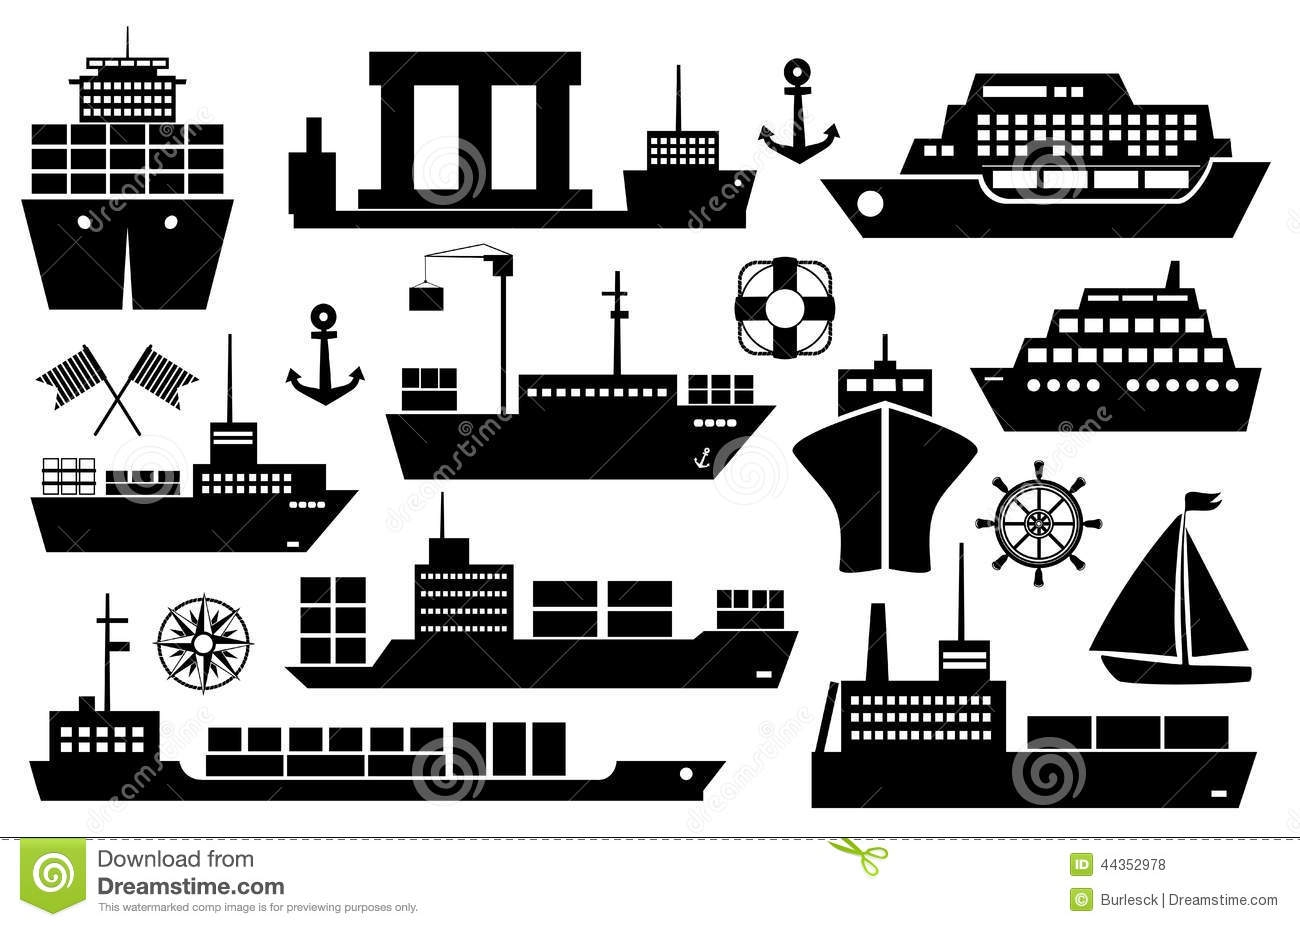 sailboat coloring page - stock illustration set ships boats icons black white silhouette showing passenger lines cruise ship sailboat yacht container ship tanker image